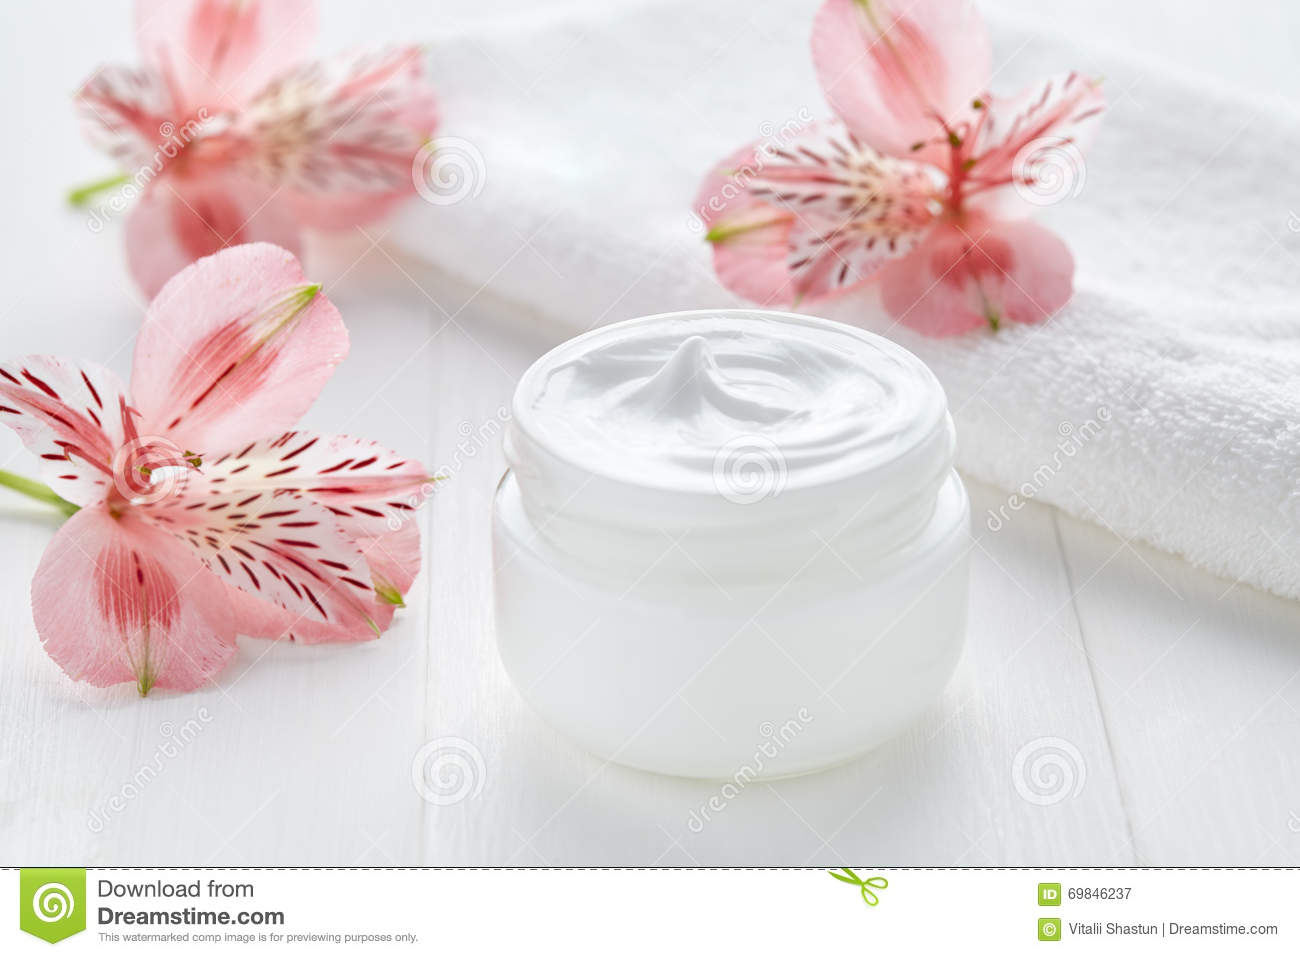 Yogurt Cream Natural Organic Beauty Cosmetic Product Wellness And Relaxation Royalty Free Stock Photography